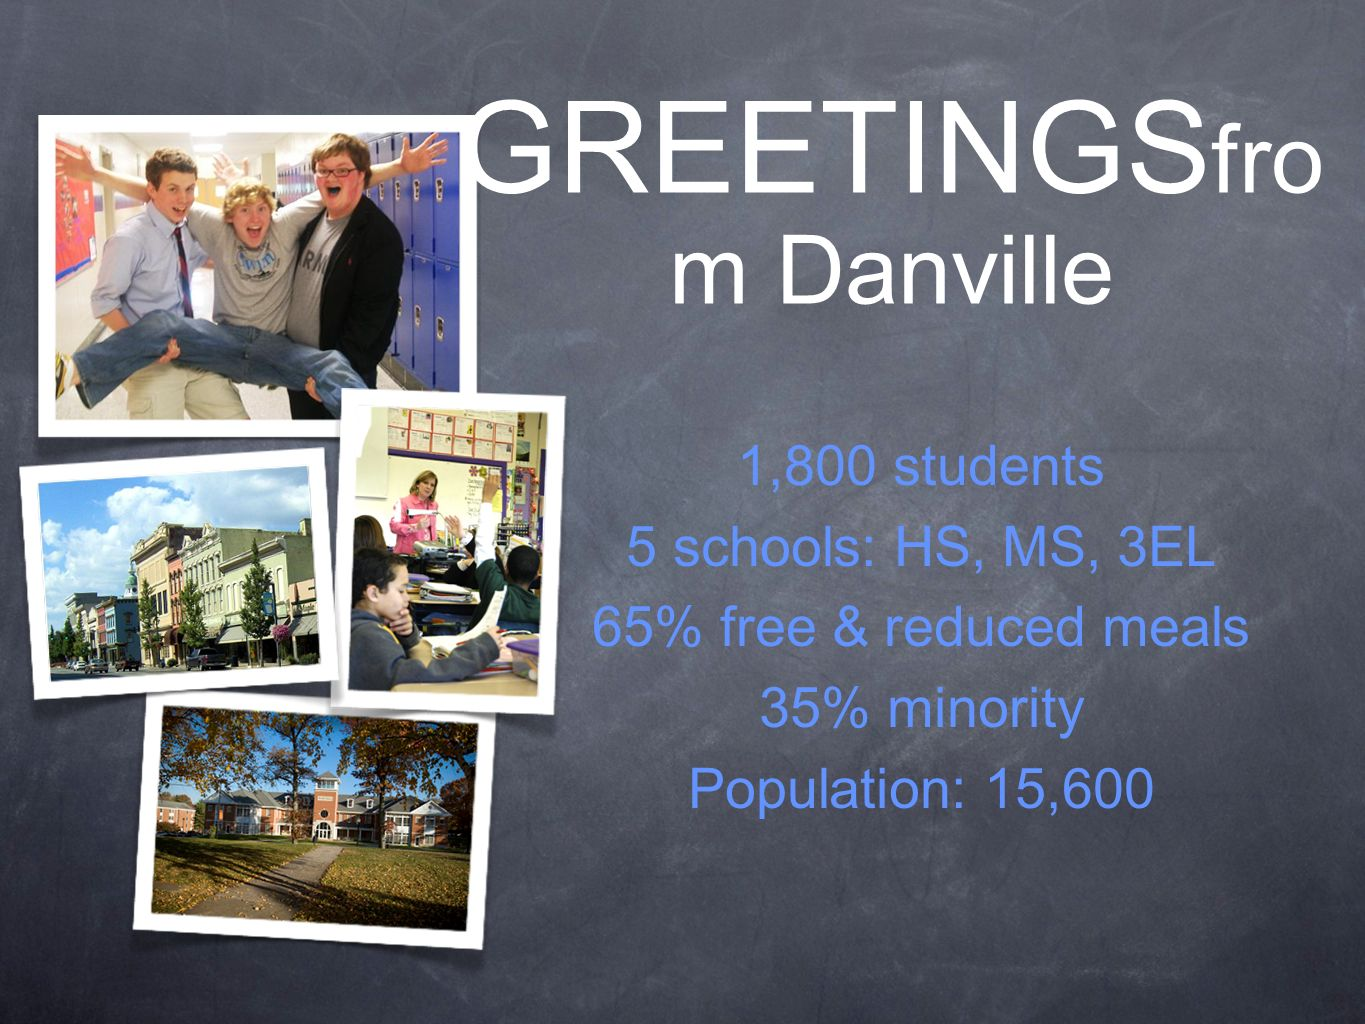 1,800 students 5 schools: HS, MS, 3EL 65% free & reduced meals 35% minority Population: 15,600 GREETINGS fro m Danville